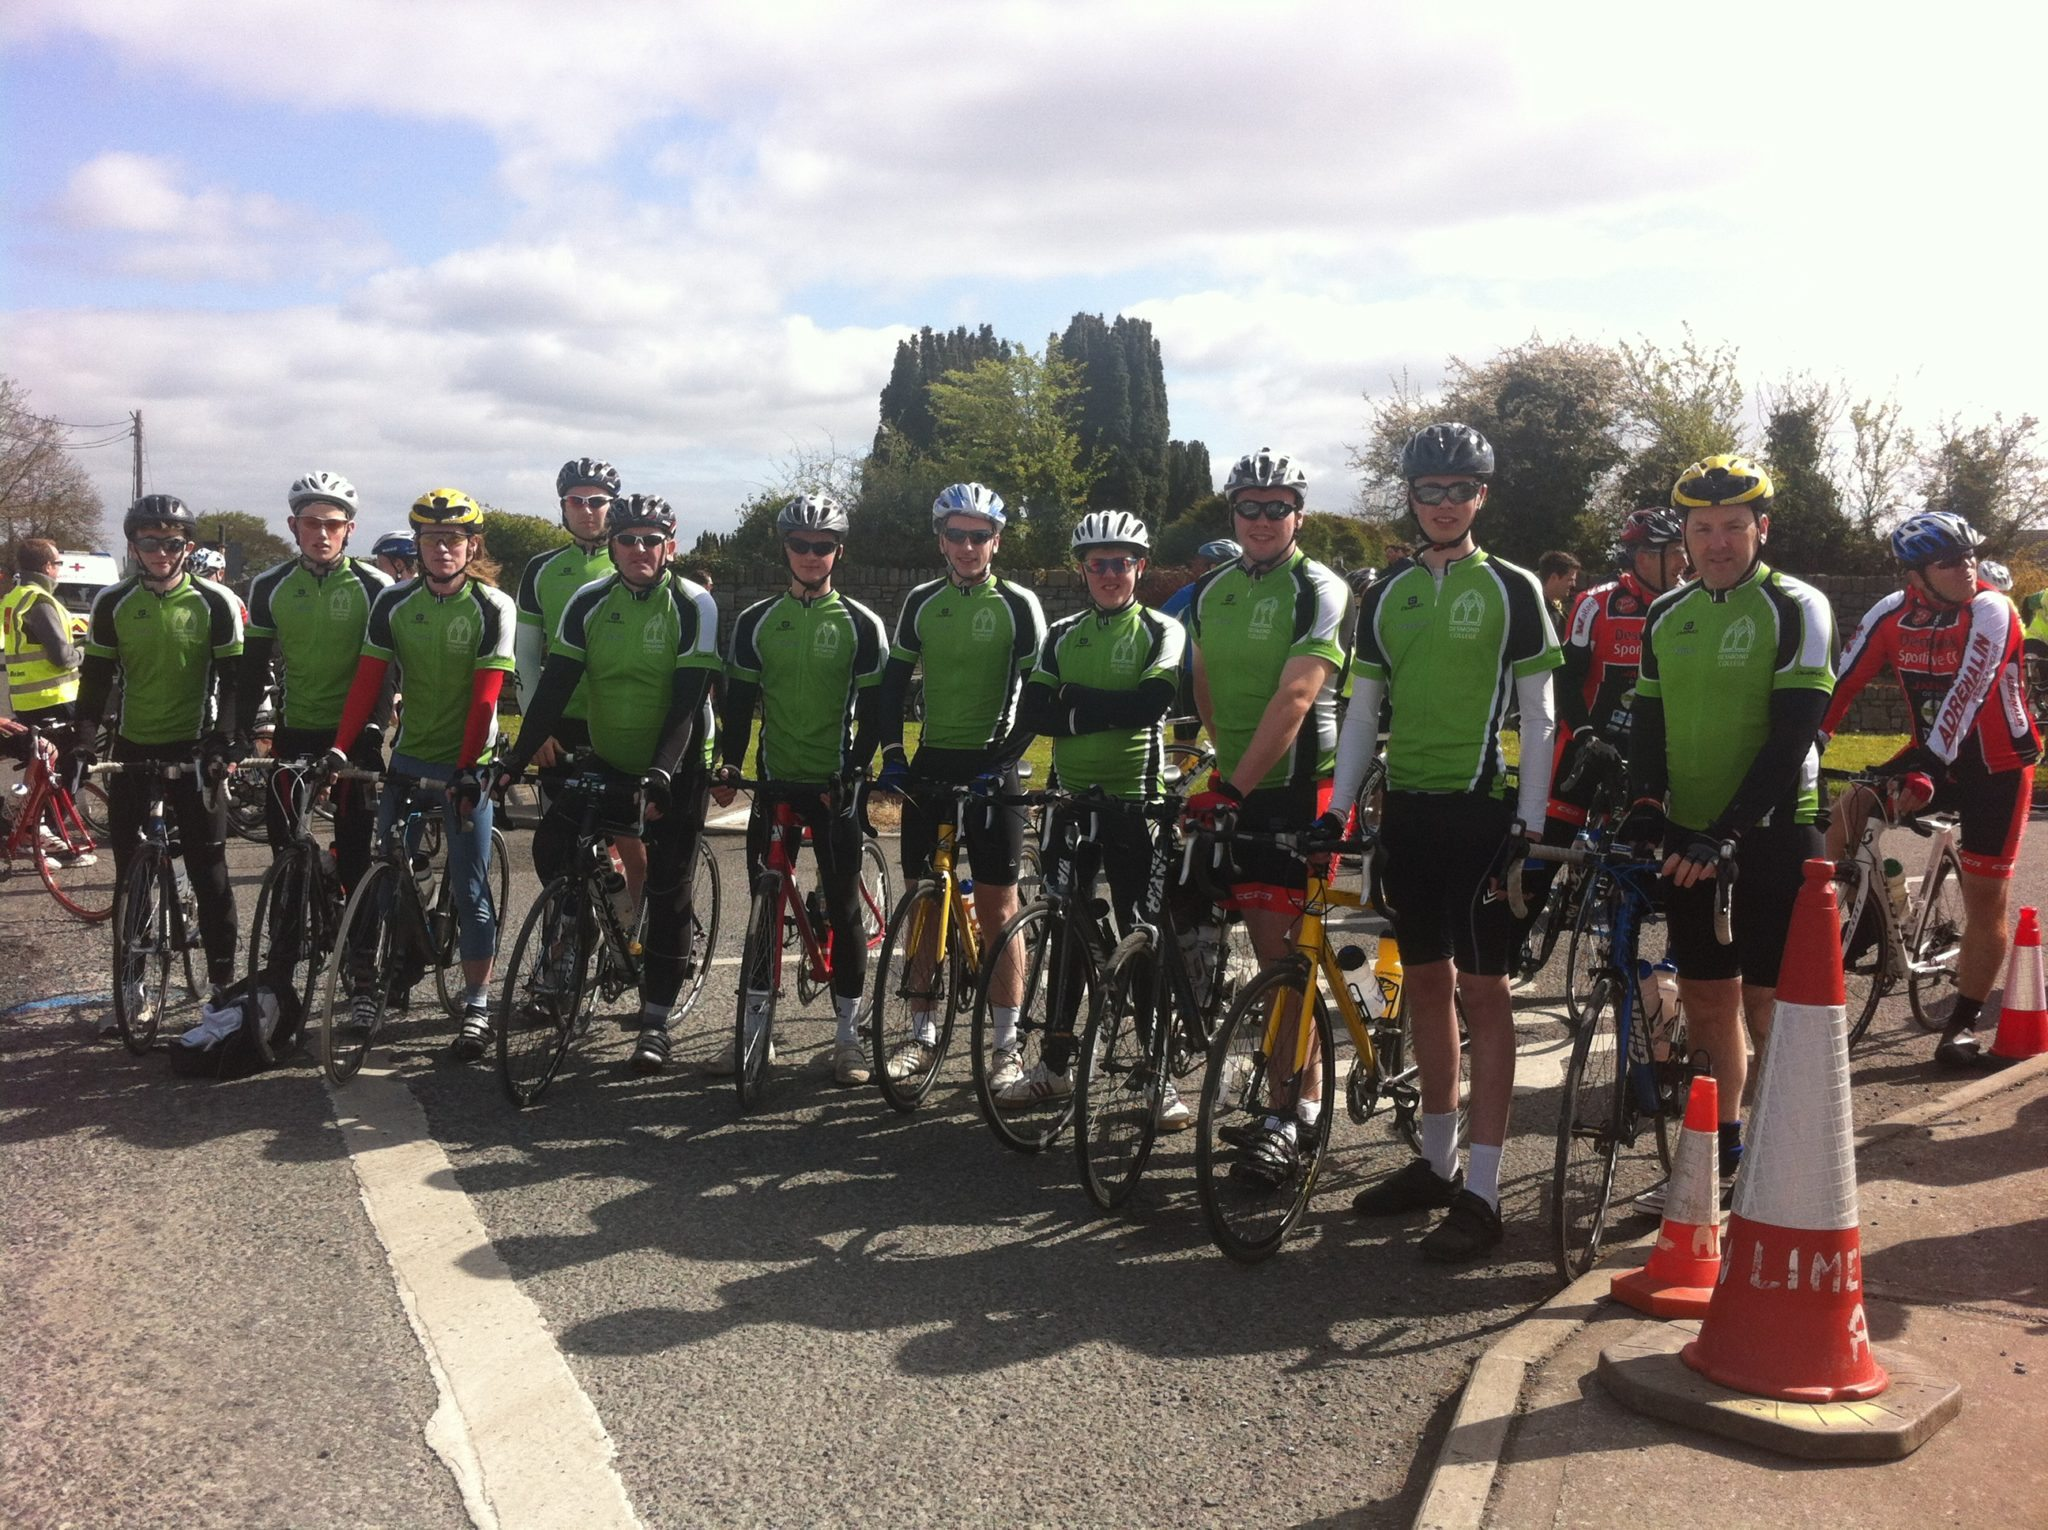 Desmond College Cycle Club